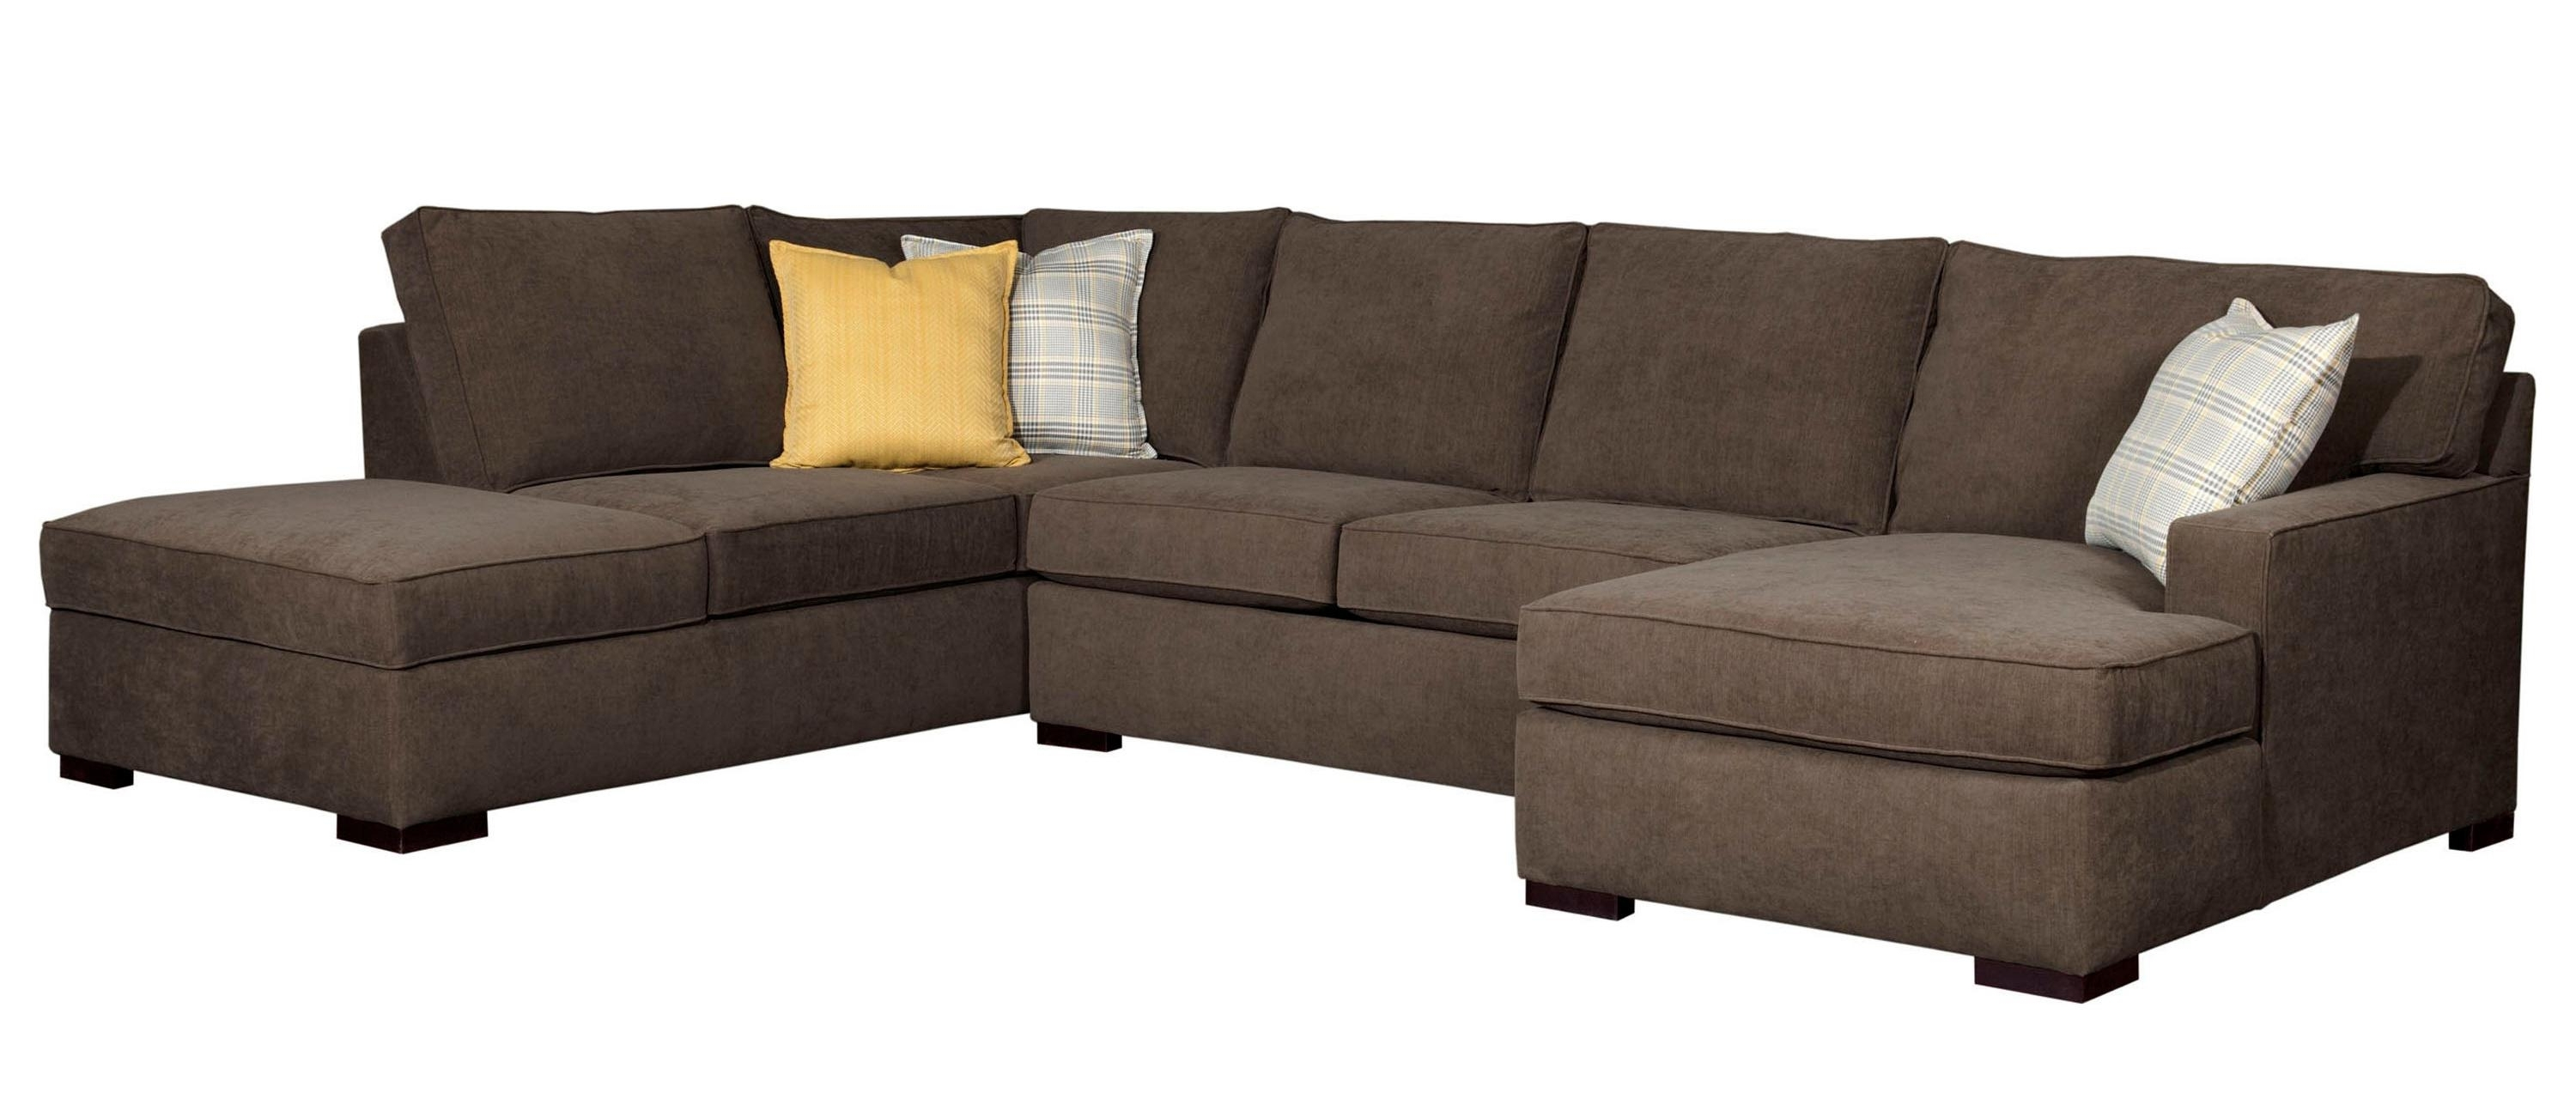 2017 Broyhill Sectional Sofas Throughout Broyhill Furniture Raphael Contemporary Sectional Sofa With Laf (View 3 of 15)